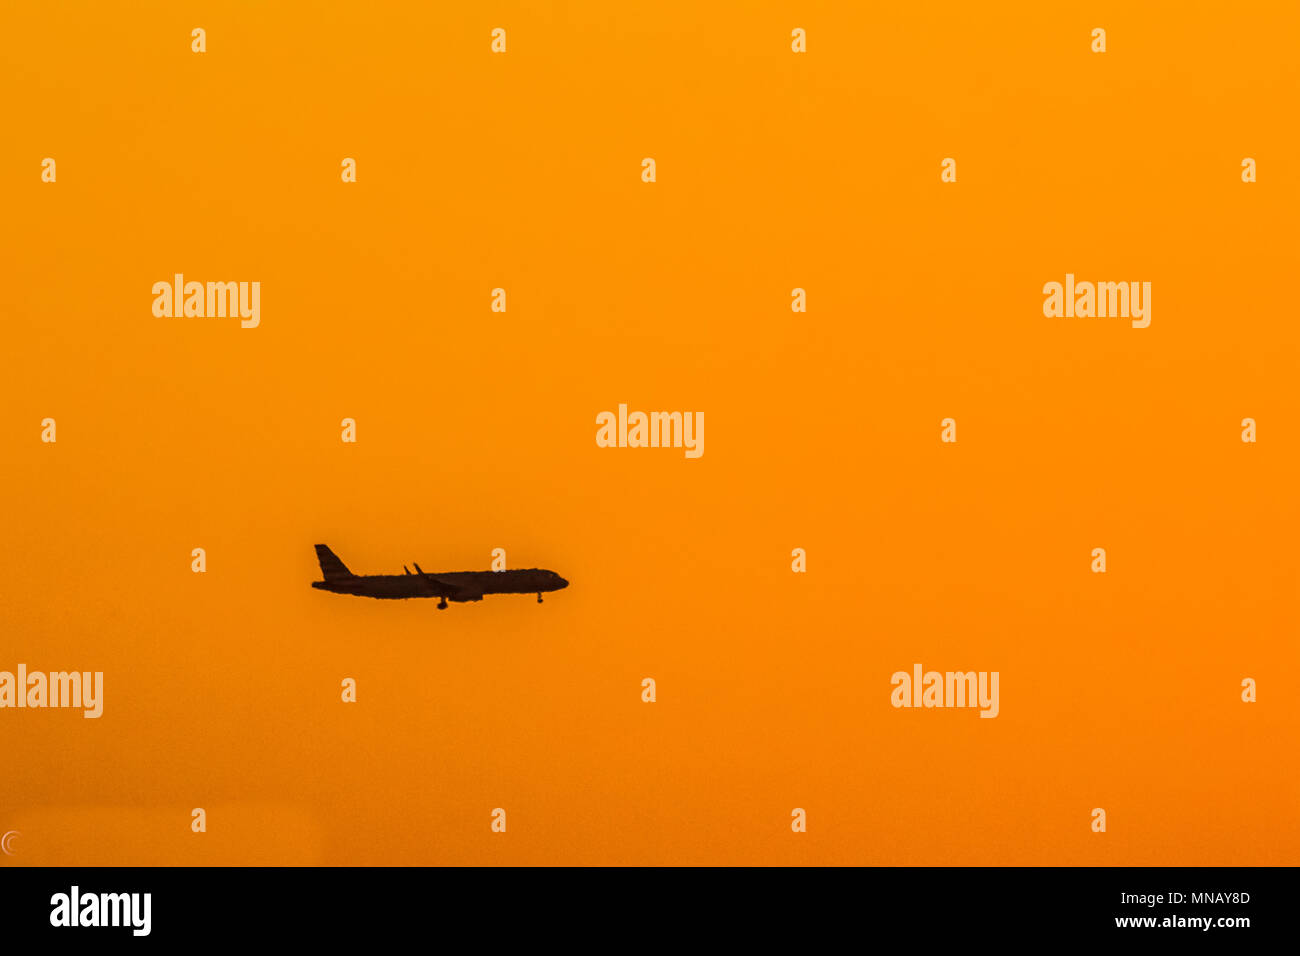 Aircraft silhouetted against bright orange morning sky - Stock Image